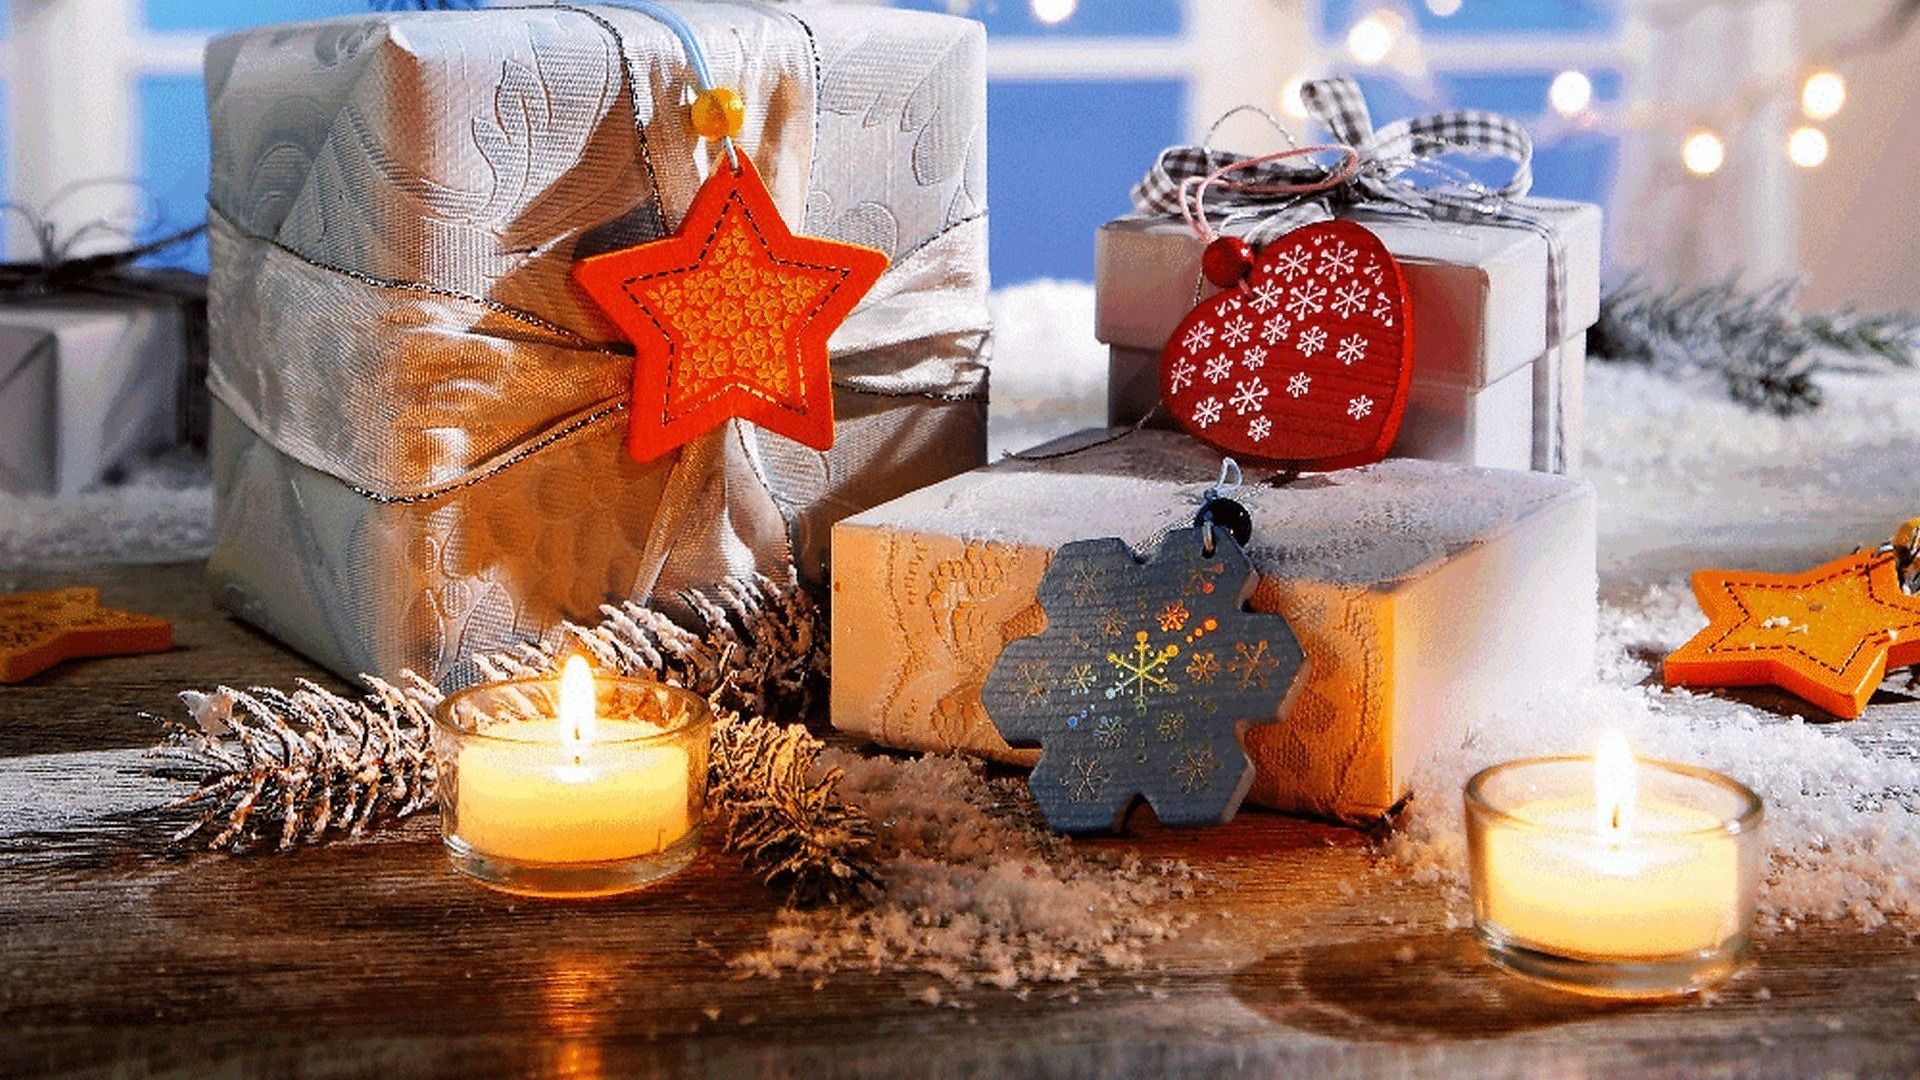 Download-winter-stars-snow-decoration-snowflakes-holiday-heart-candles-New-Year-C-wallpaper-wpc9004504